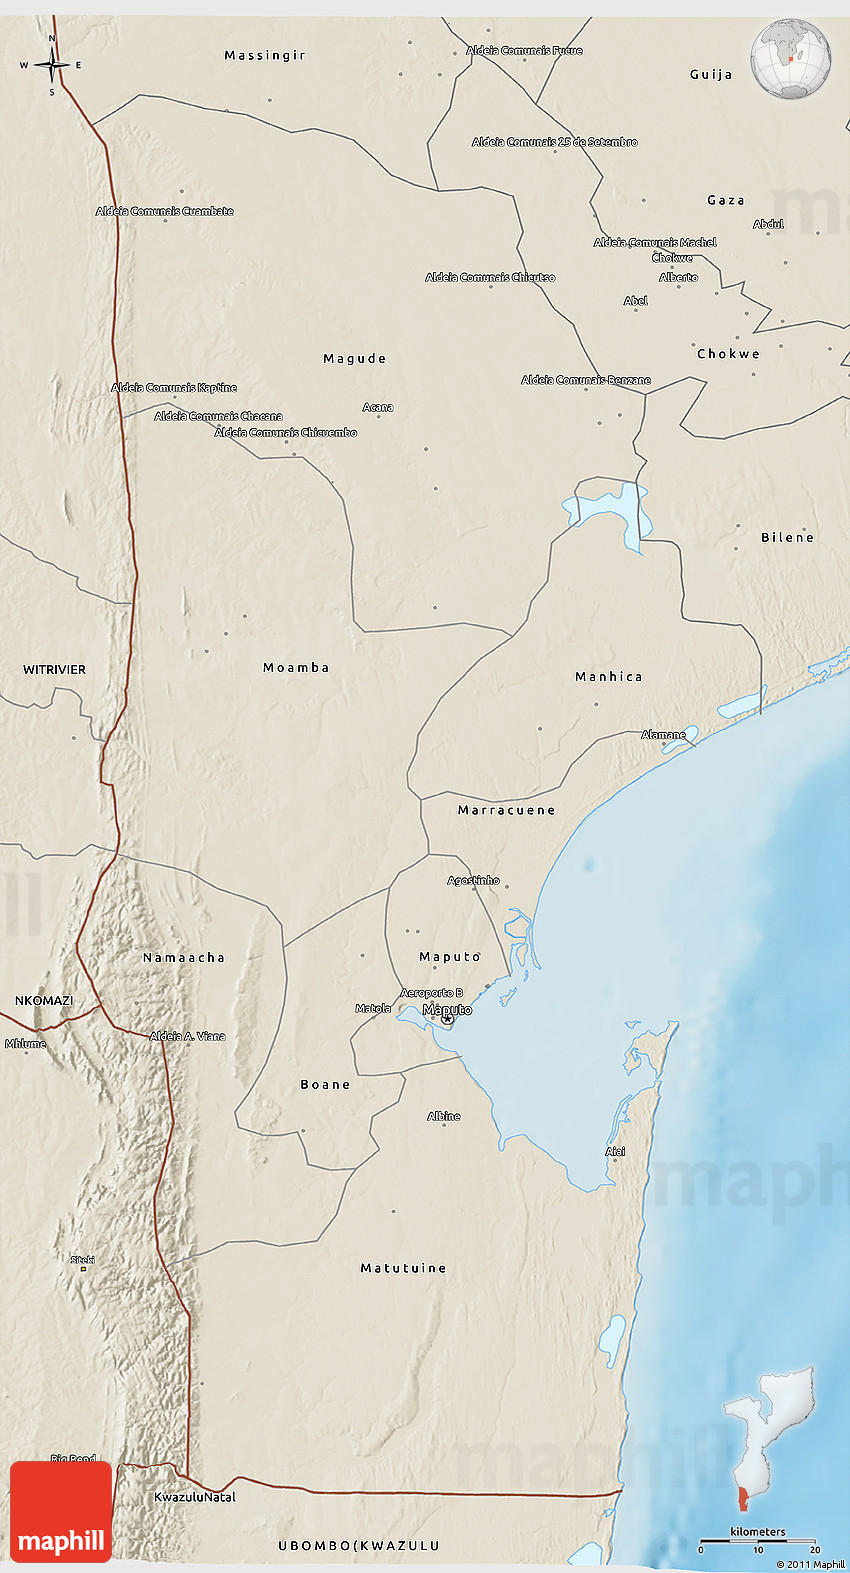 shaded relief 3d map of maputo